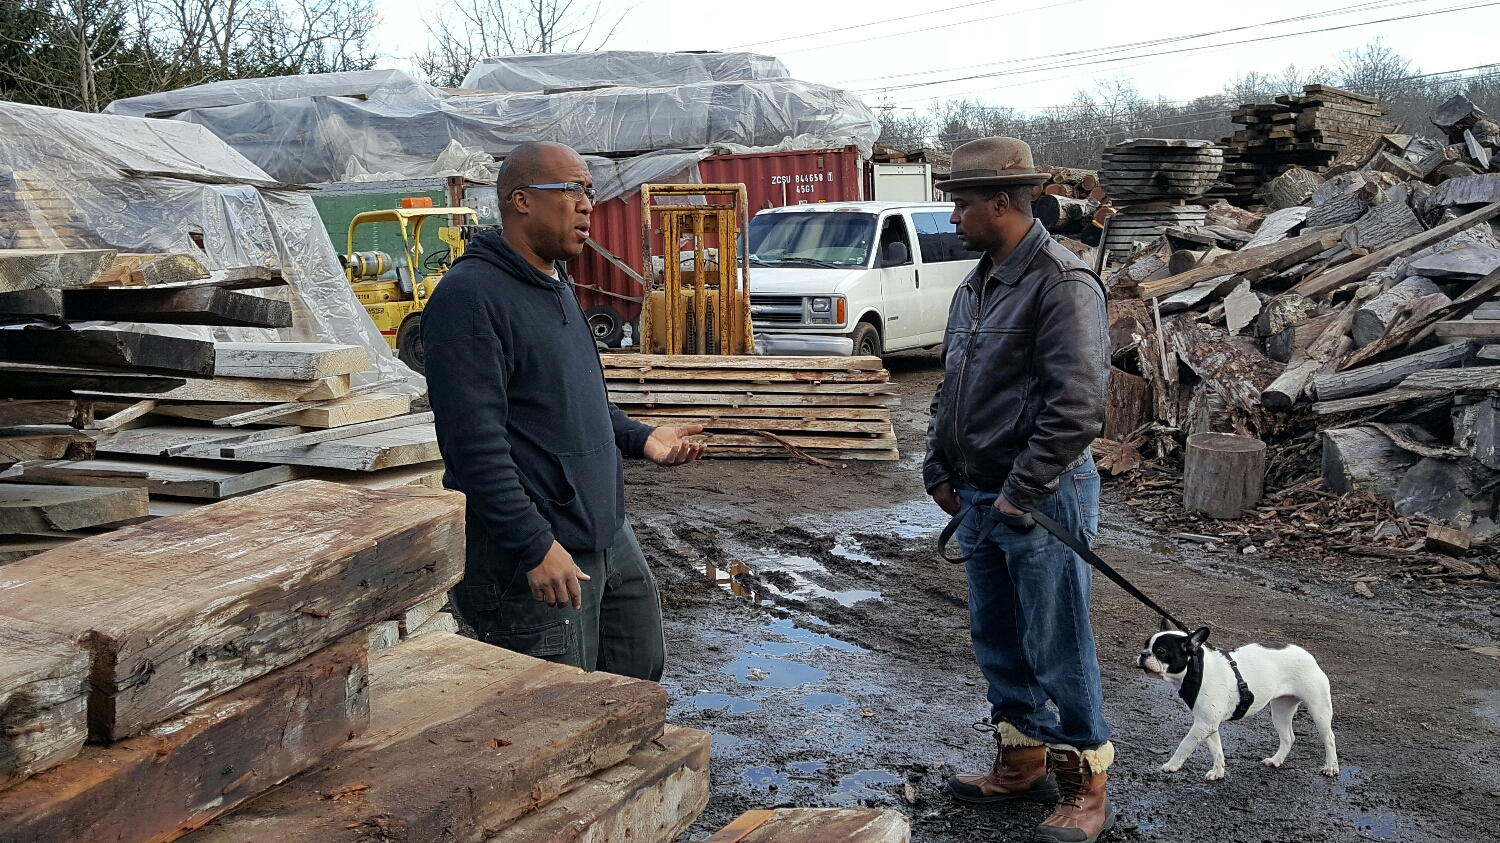 Discussing wood for a table project